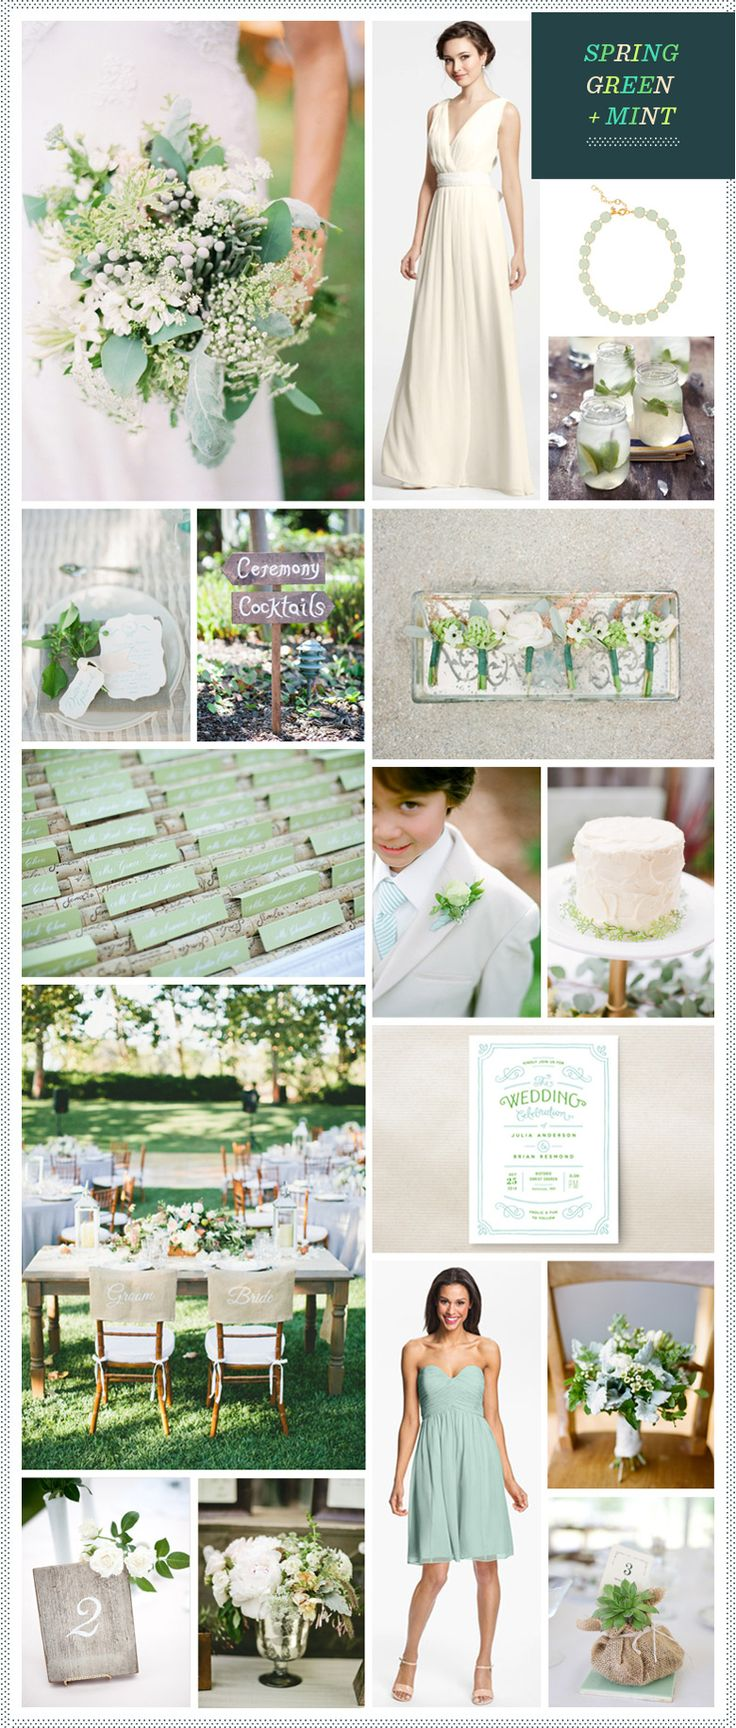 REVEL: Spring Green + Mint Wedding Inspiration...one of my favorites!